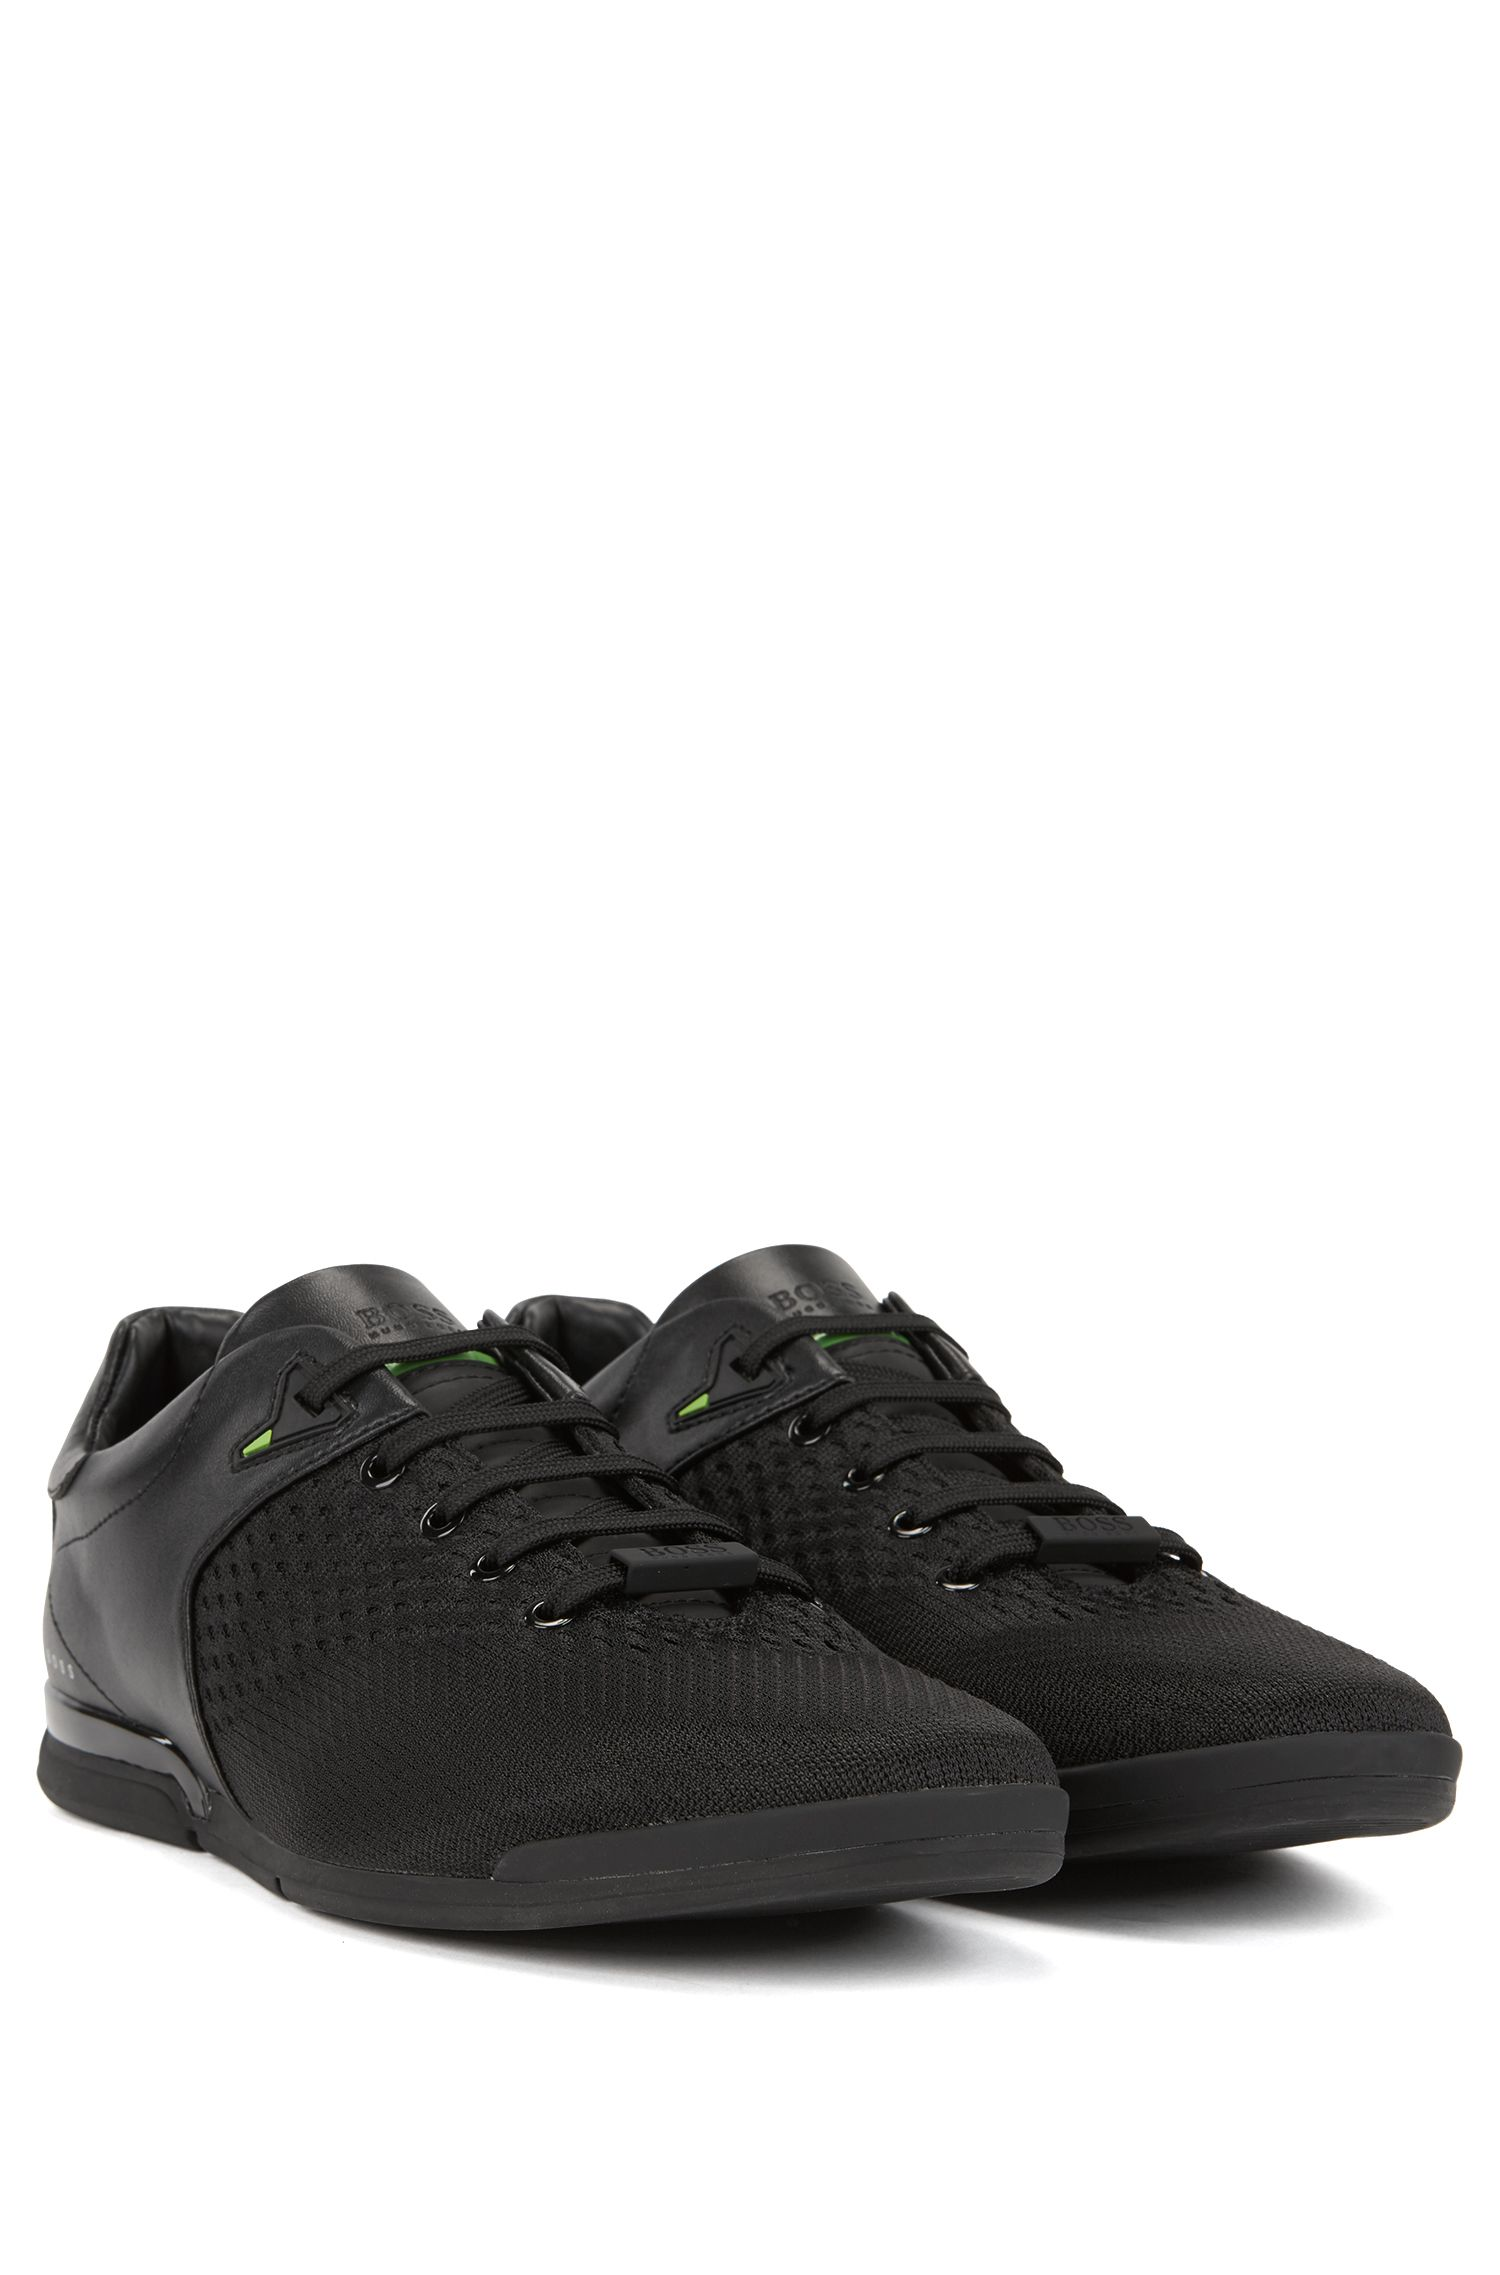 Low-profile trainers with jacquard-knit uppers, Black